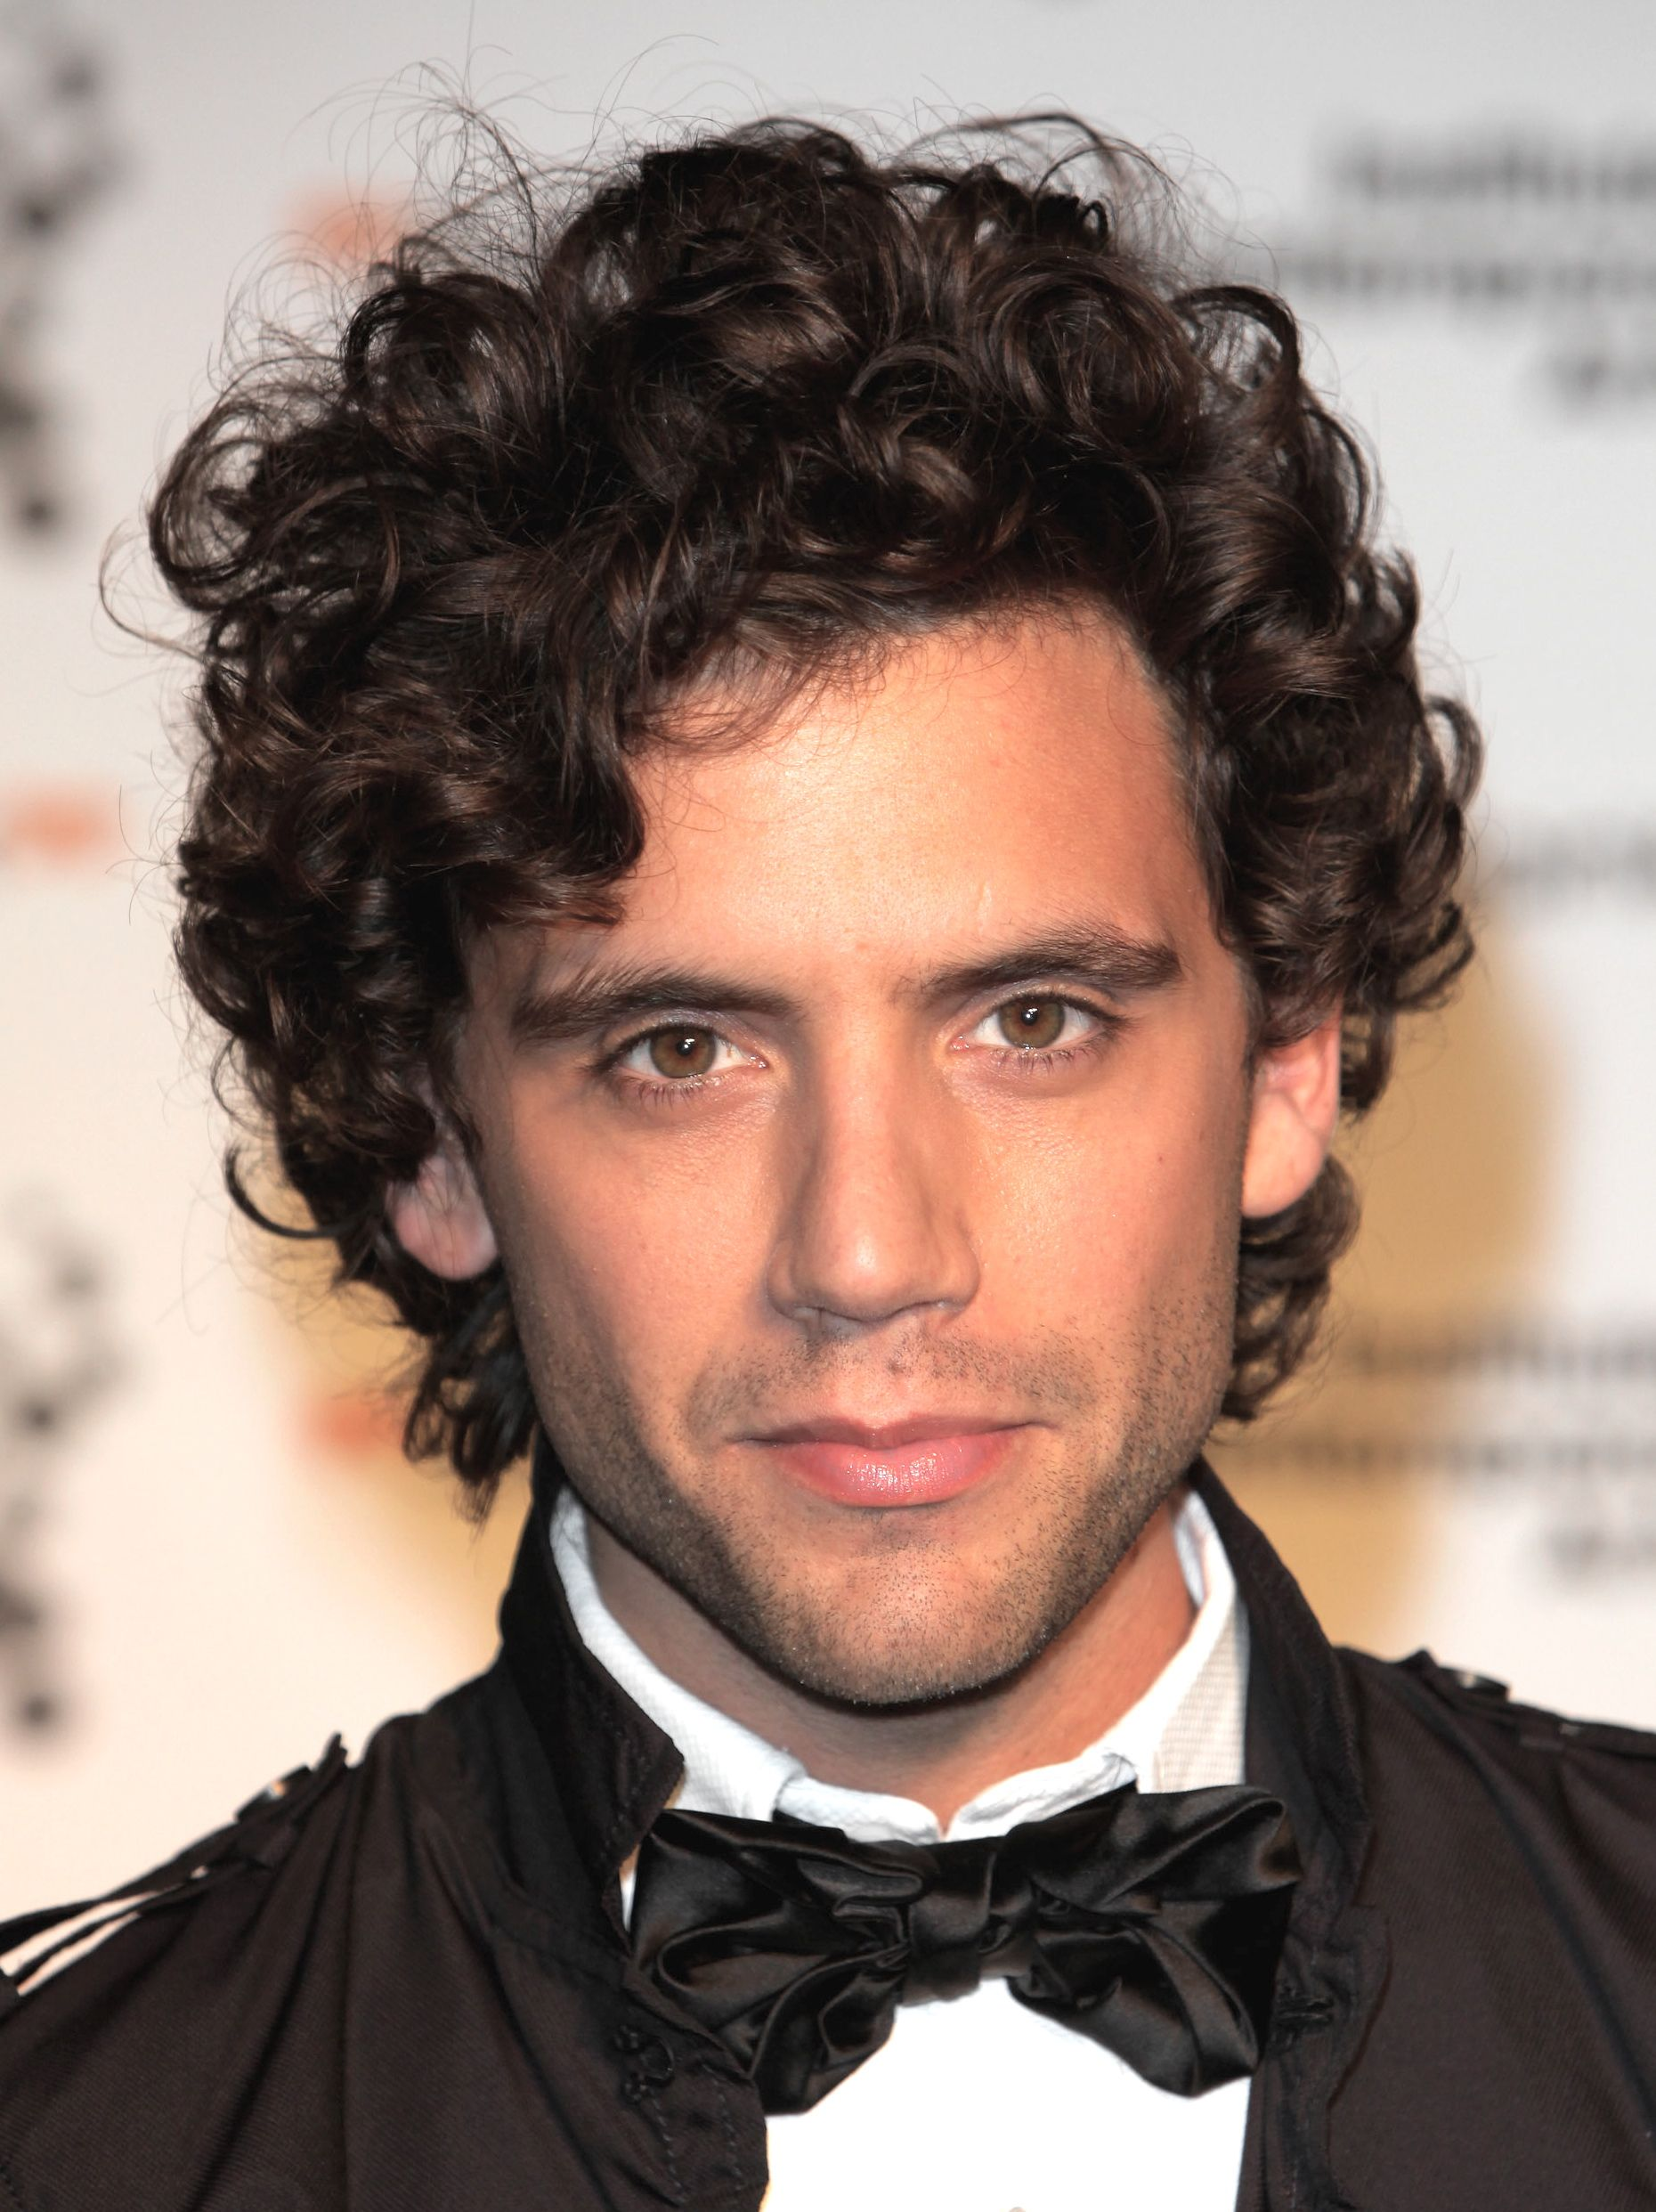 10 famous men with curly hair curly hair men wavy hair